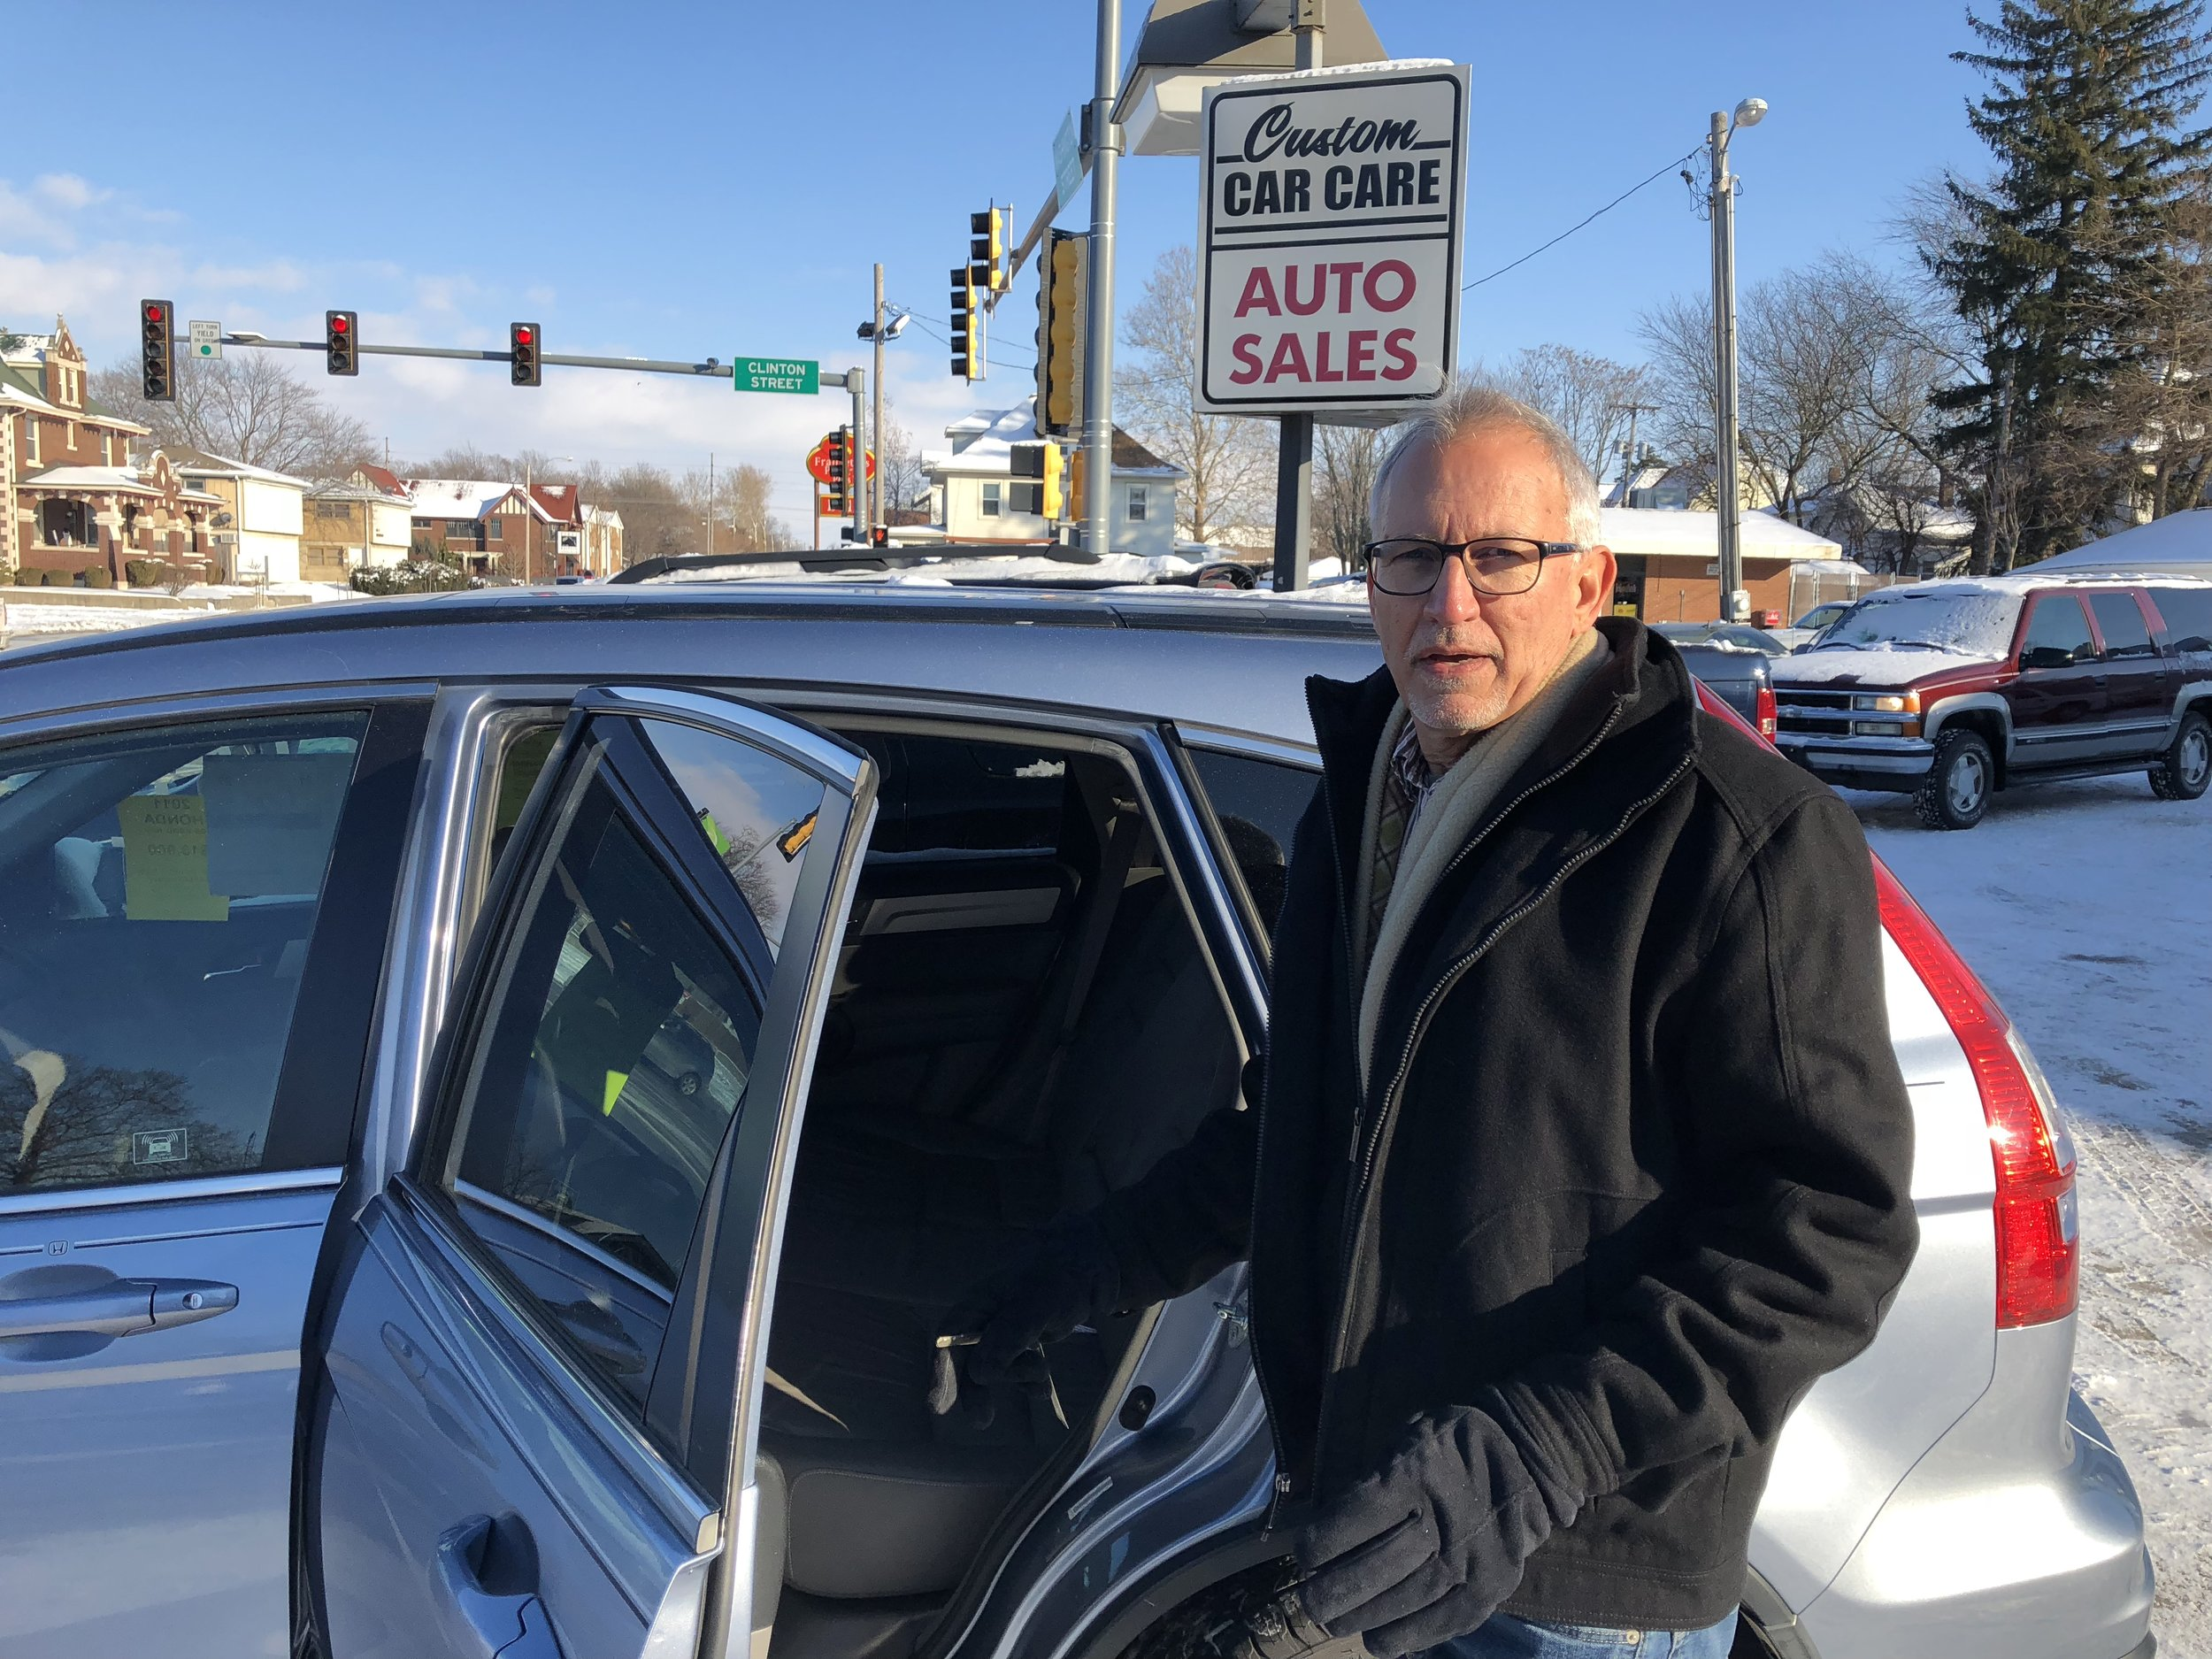 Pete Hettinger shows off a Honda CR-V in the Custom Auto Sales parking lot (Credit: Erik Prenzler)